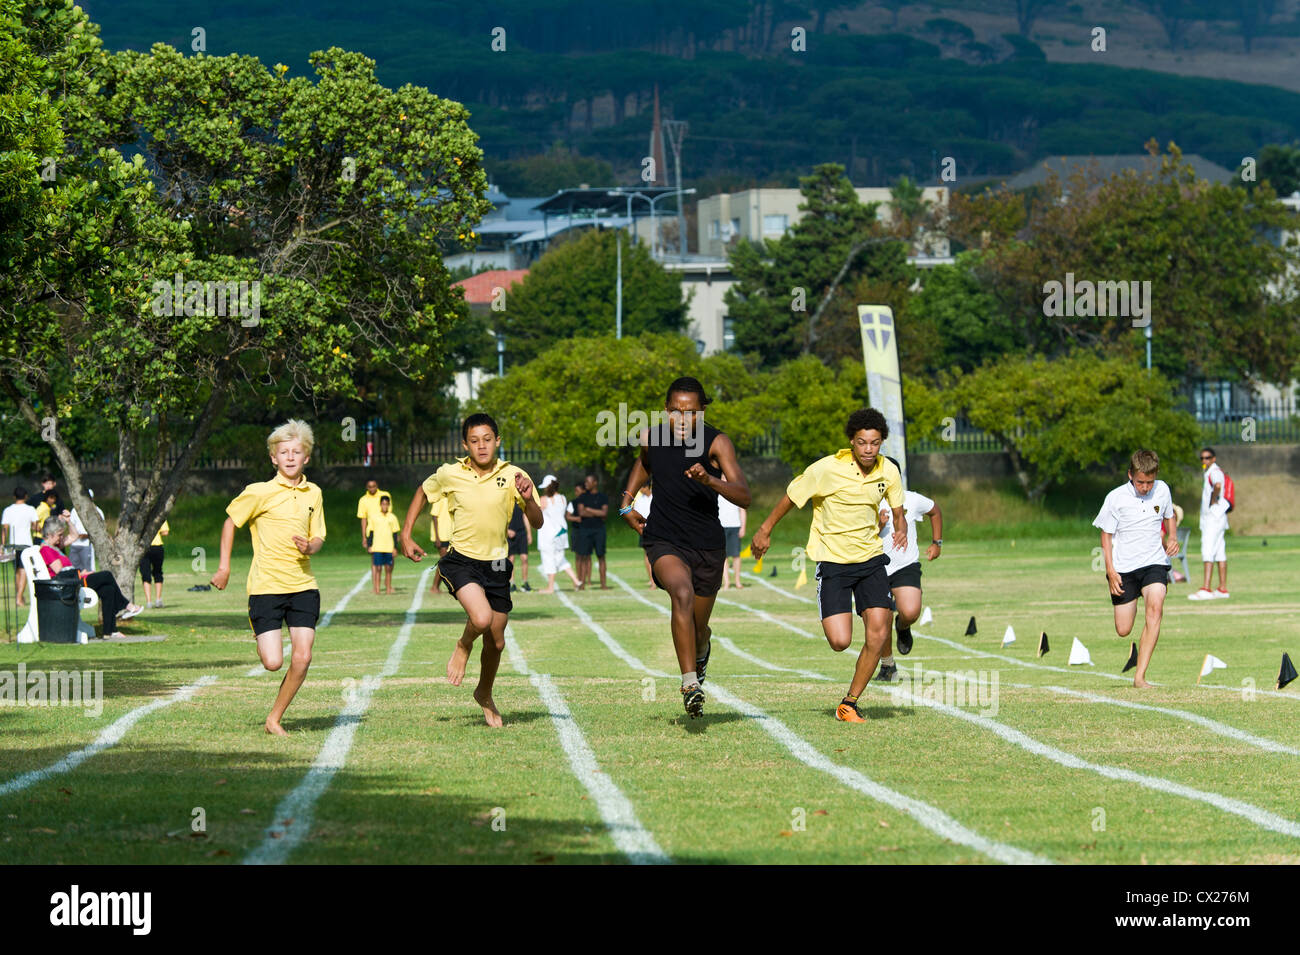 Running competition at sports day of St Geoge's School, Cape Town, South Africa - Stock Image